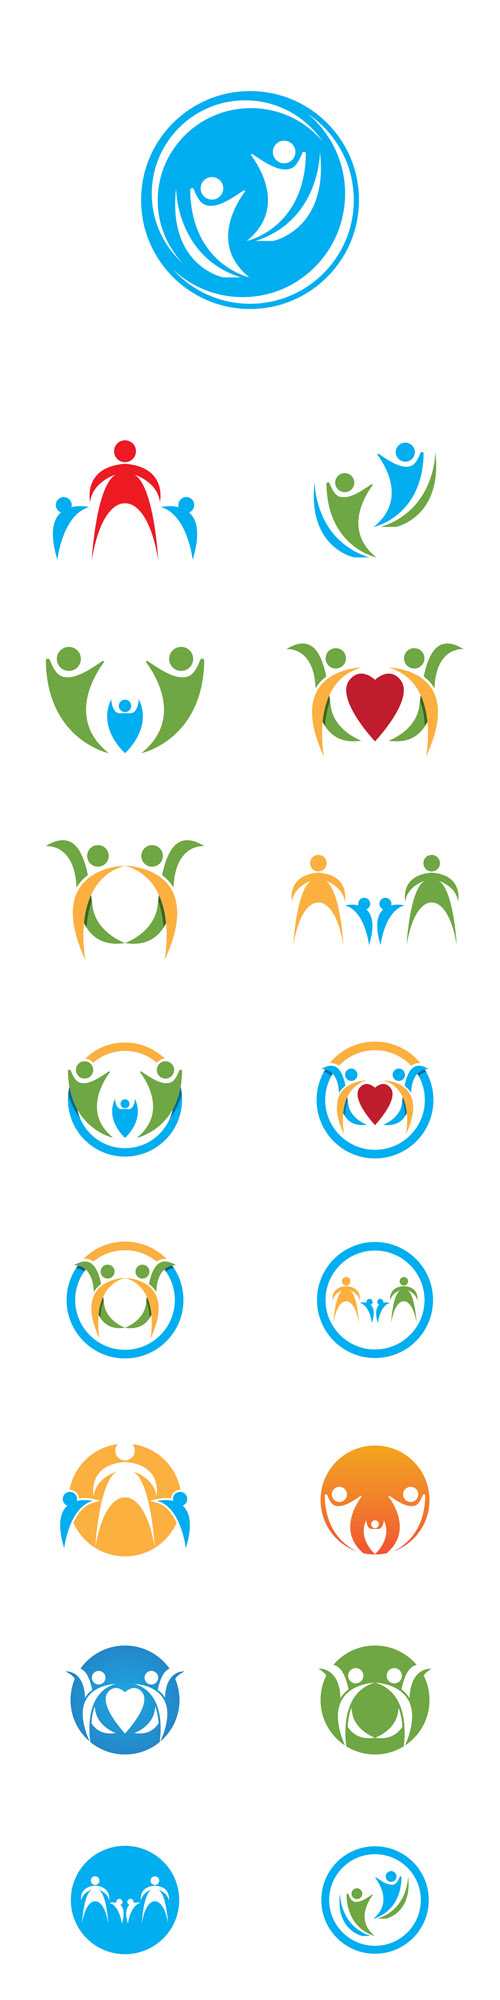 Vector Health Care Logos